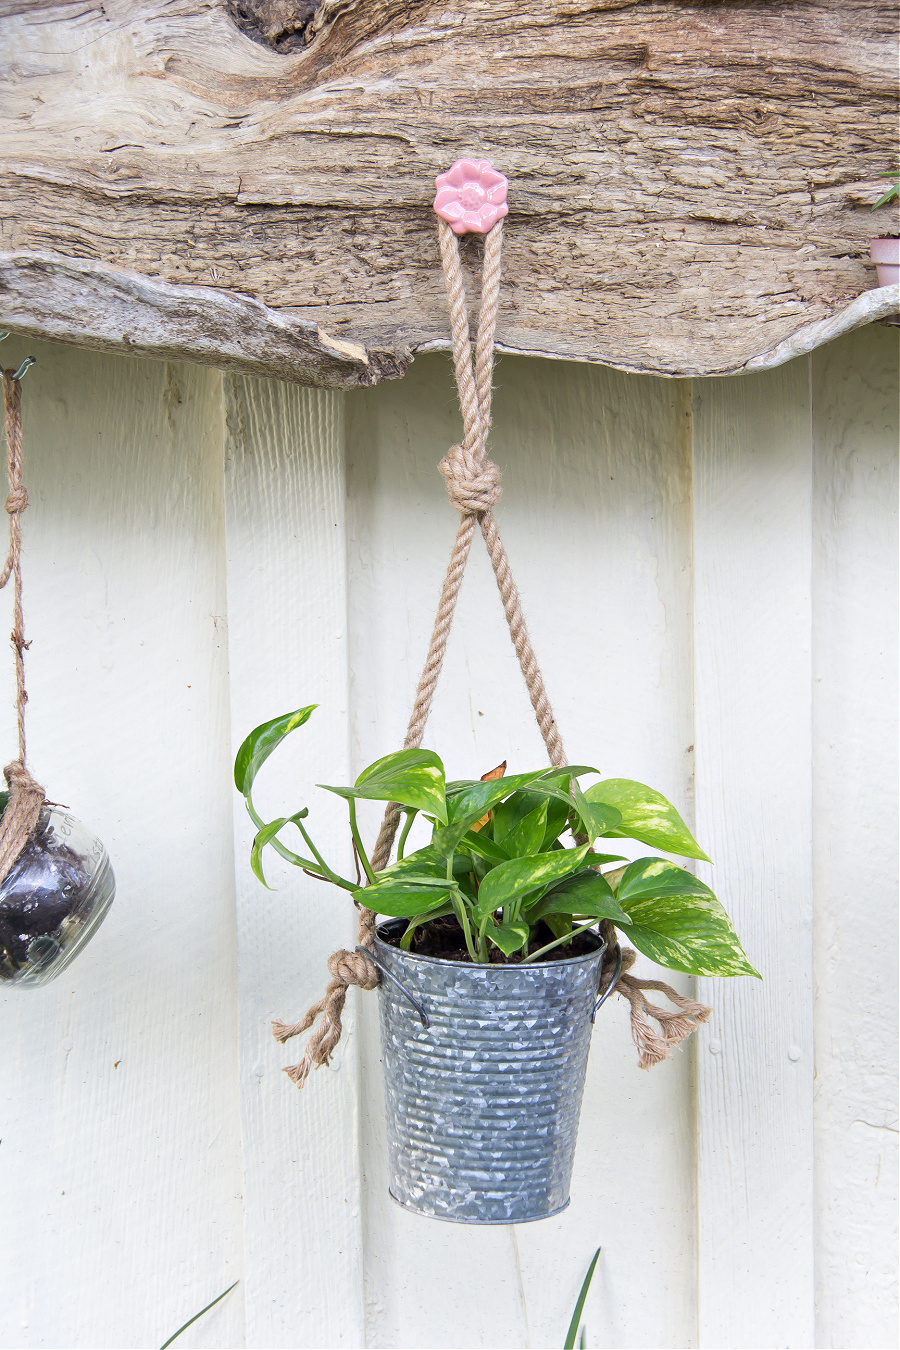 a drawer pull screwed onto driftwood to hang plants